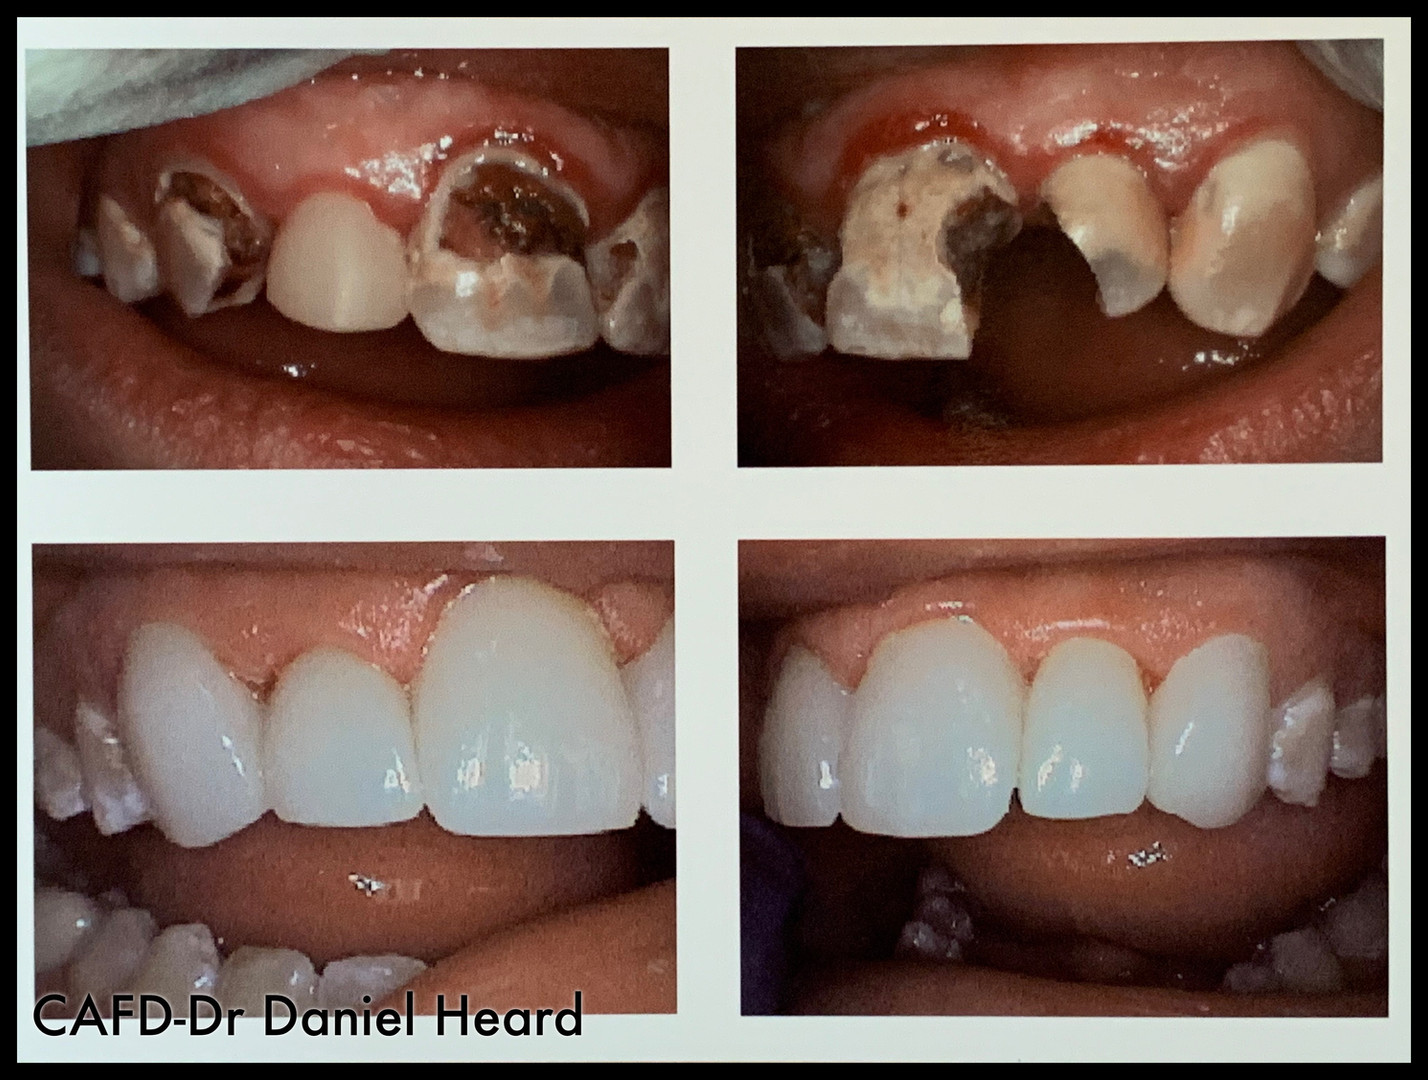 CAFD-Dr Daniel Heard-Crowns